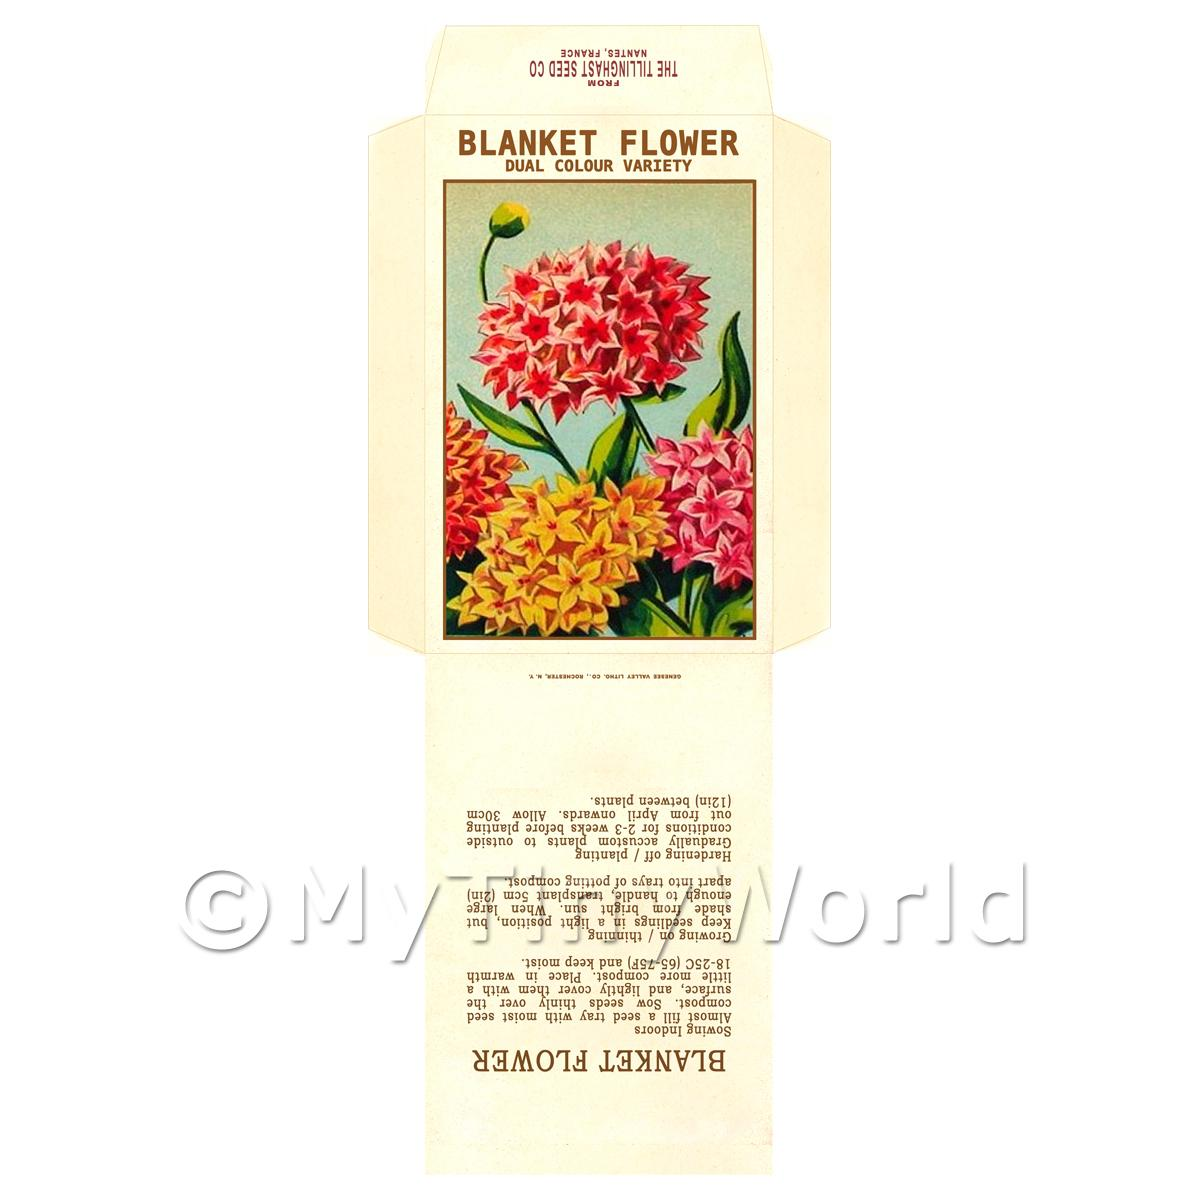 Blanket Flower Dolls House Miniature Seed Packet